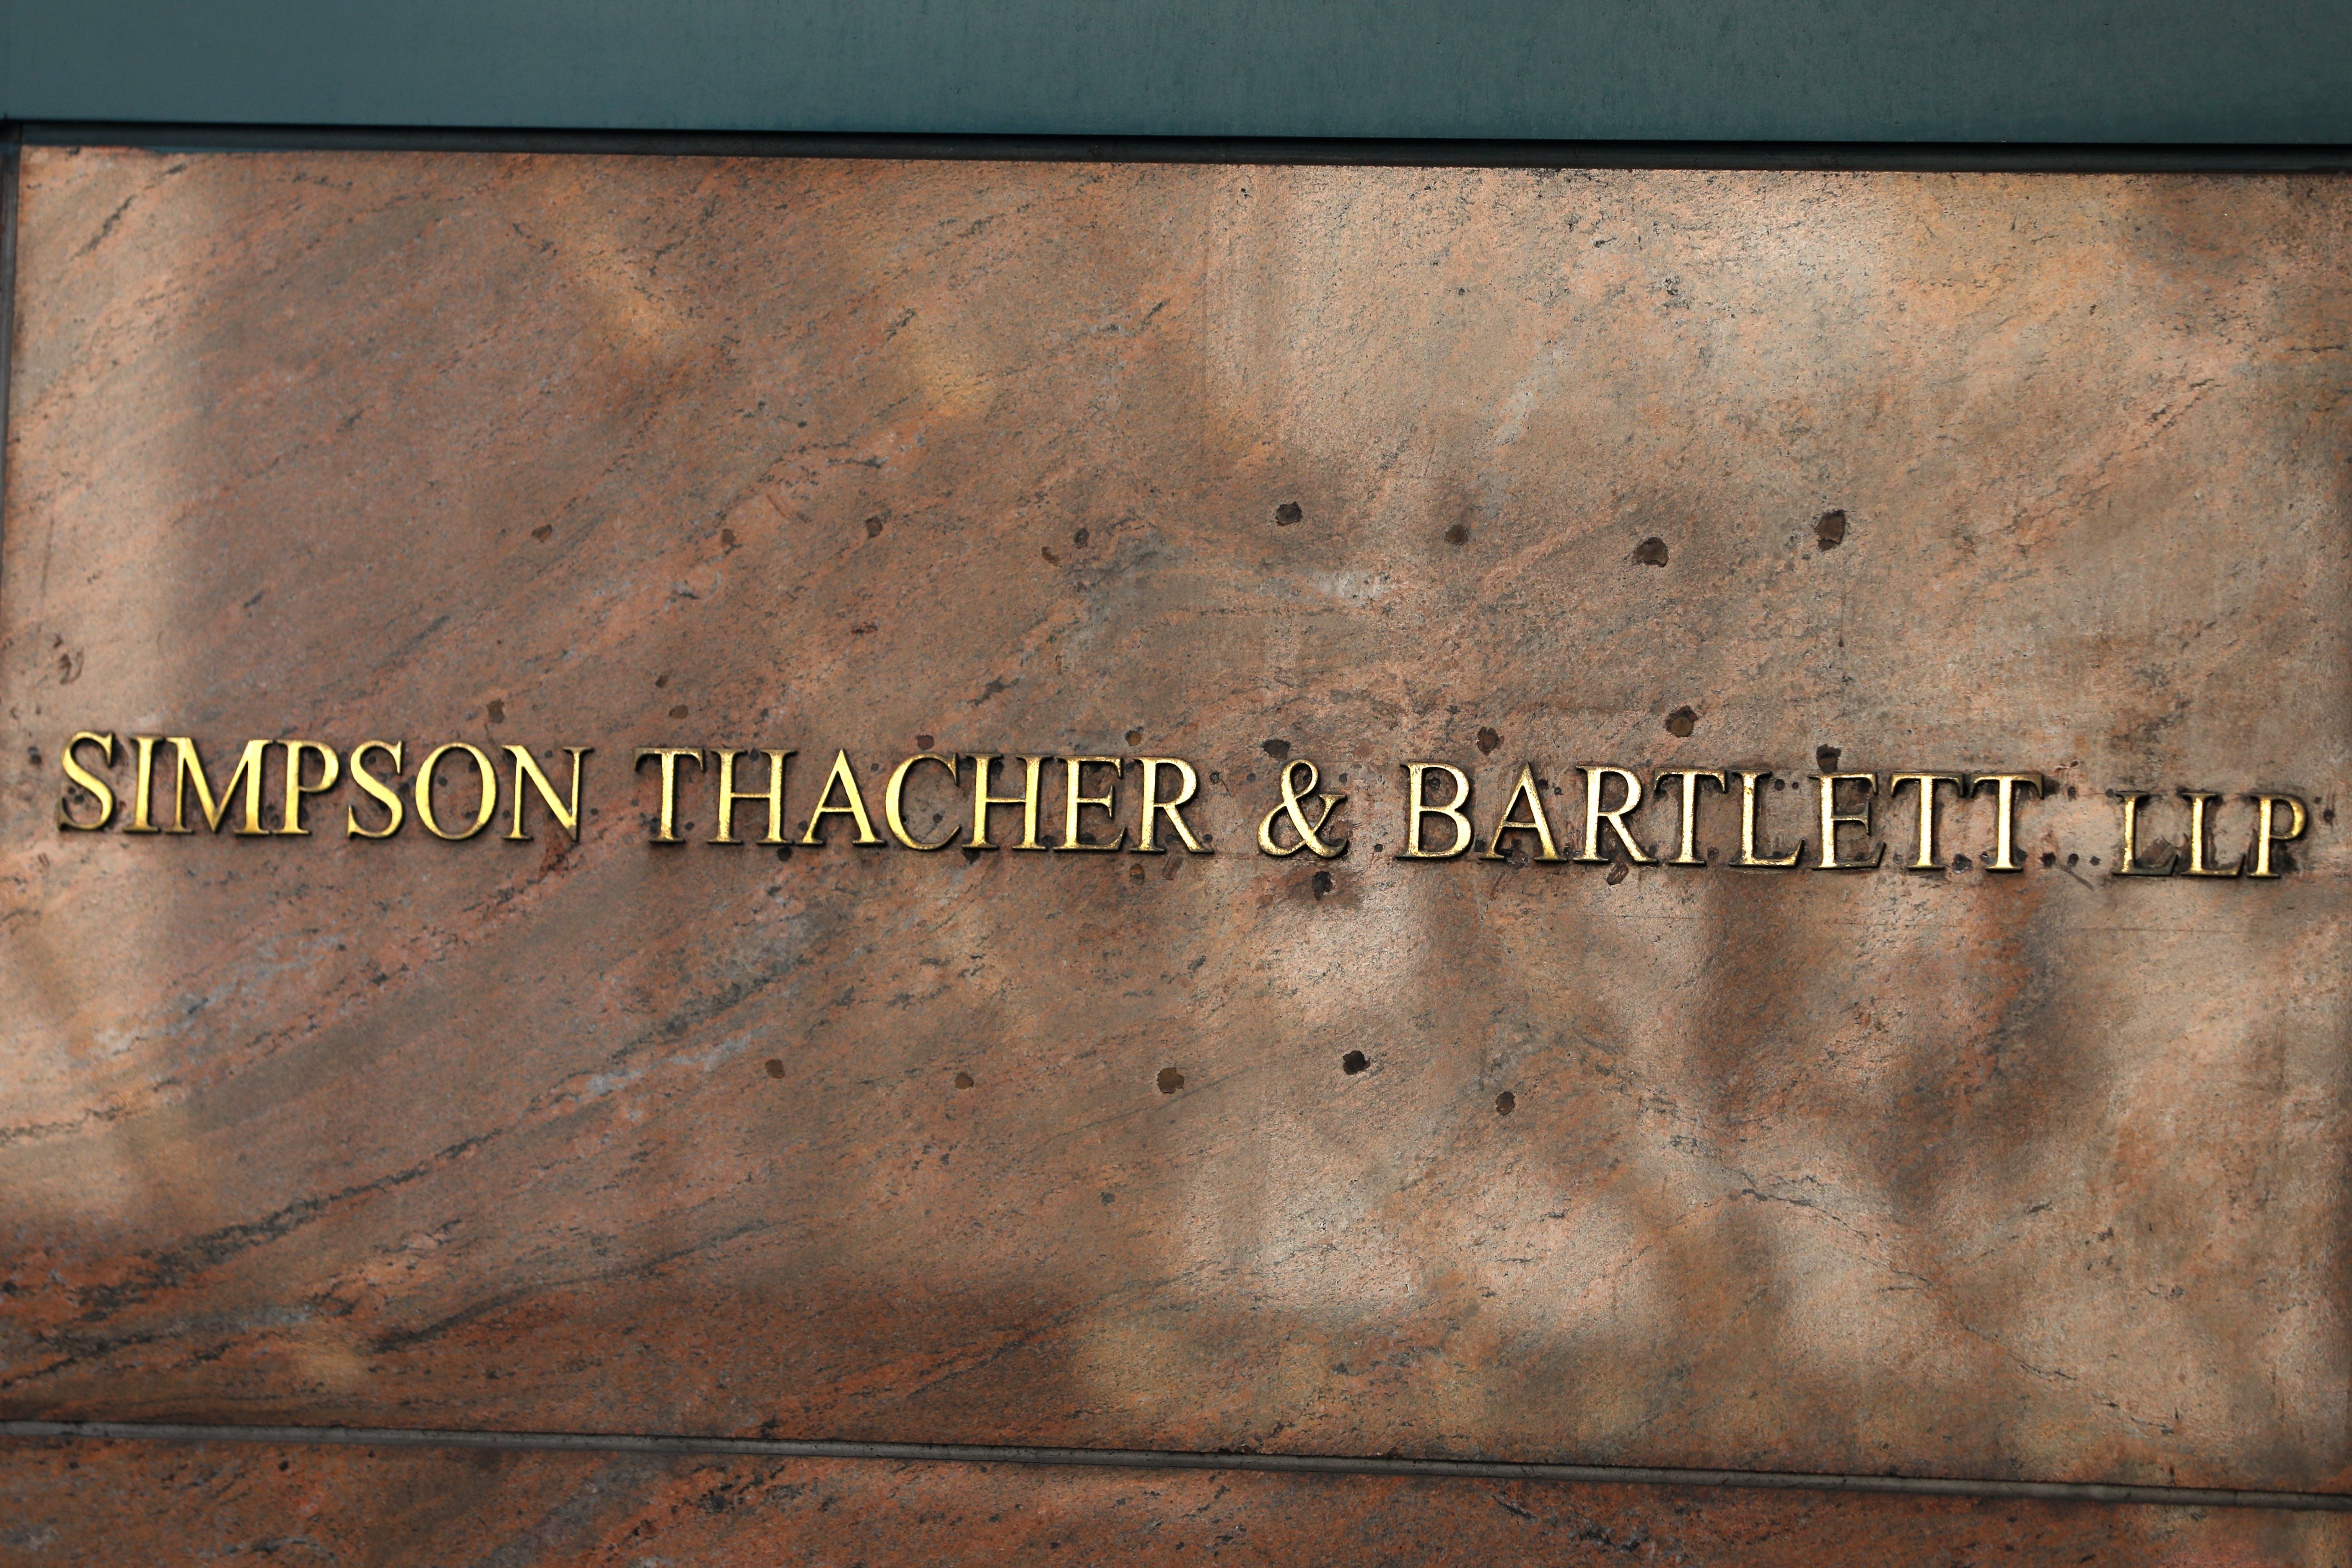 Signage is seen on the building exterior of the law firm Simpson Thacher & Bartlett LLP in Manhattan, New York City, U.S., August 17, 2020. REUTERS/Andrew Kelly